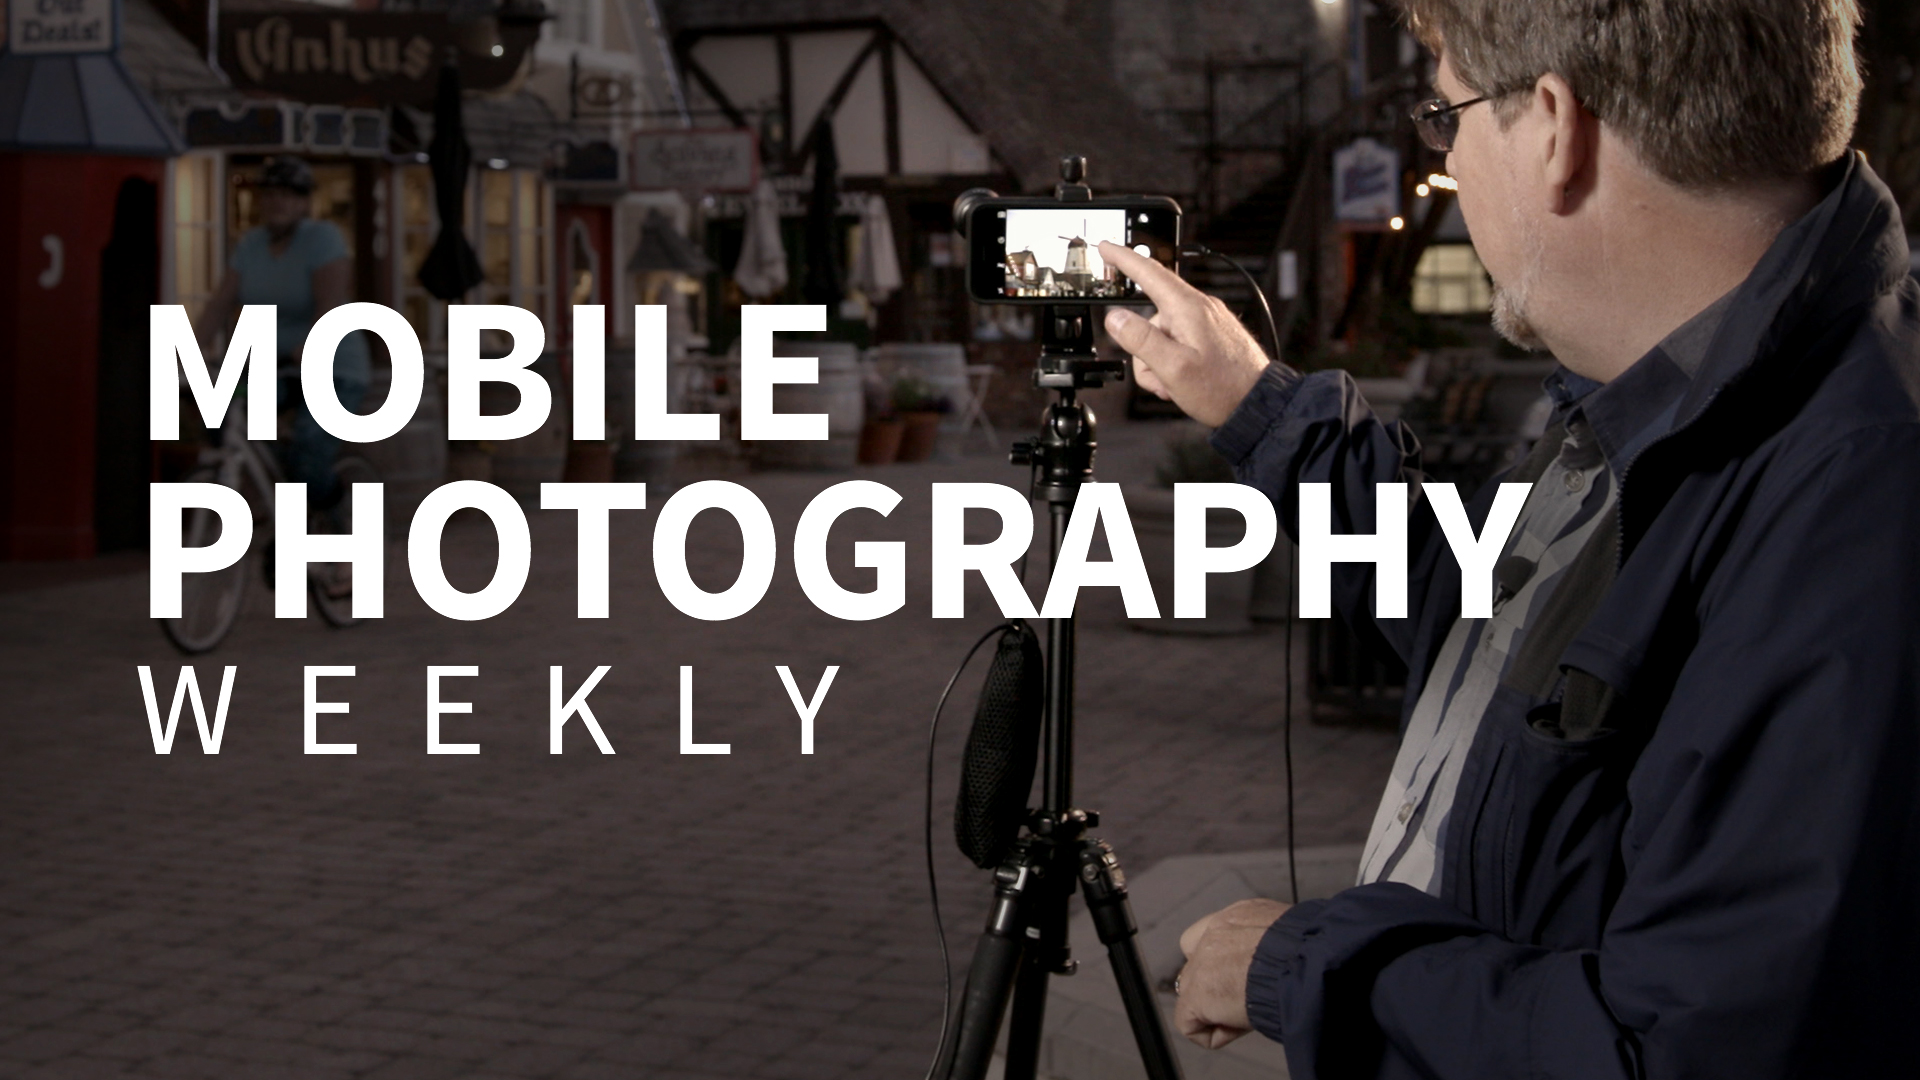 Create continuous panoramas on Instagram: Mobile Photography Weekly